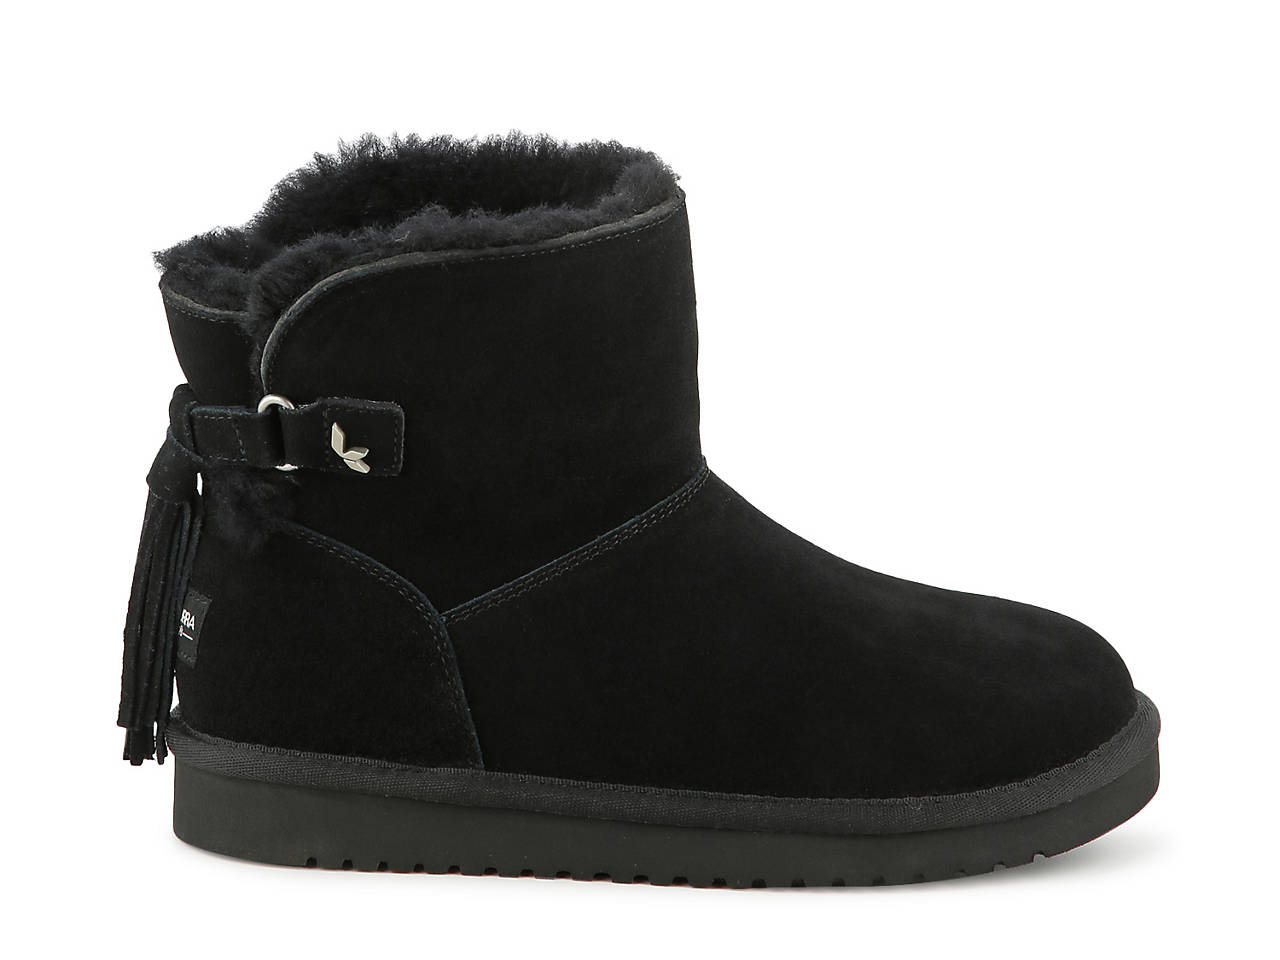 cf75db3bf6b Koolaburra by UGG Jaelyn Bootie Women s Shoes